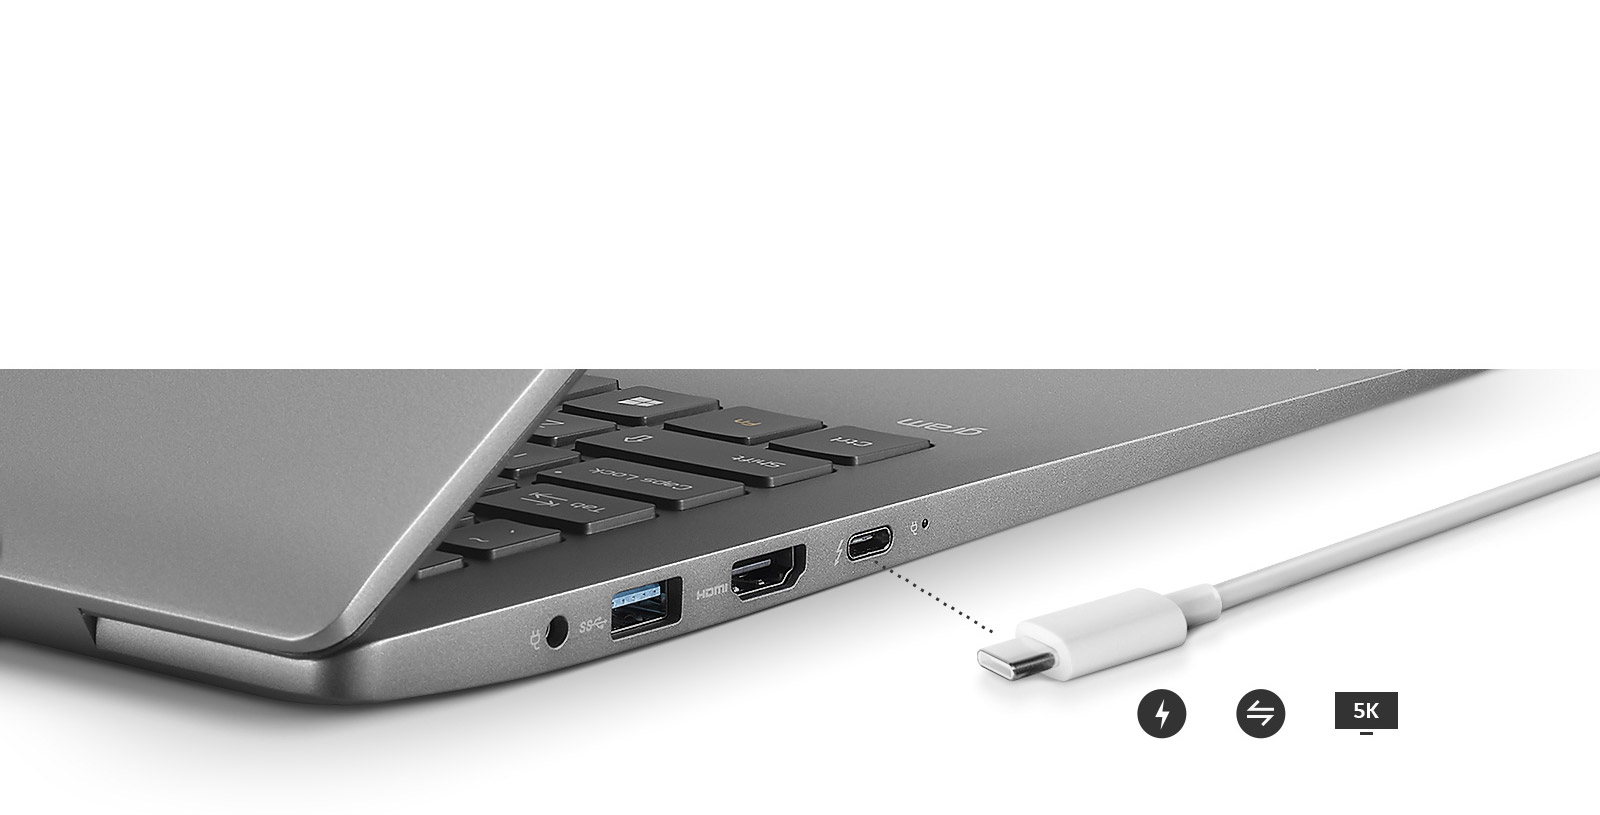 Image of a side view of the laptop with close up of outputs and a charger